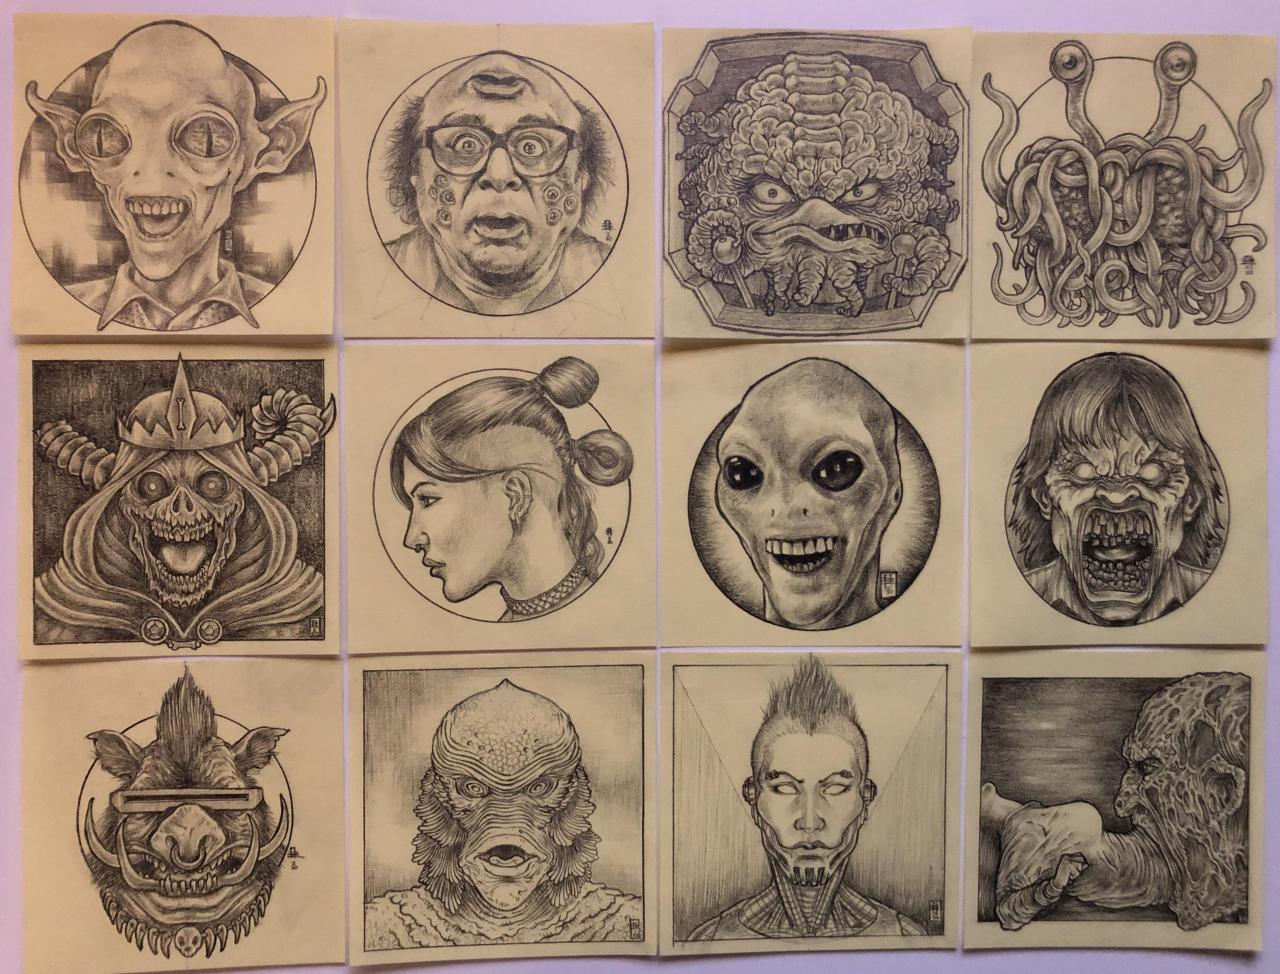 I draw a lot on Post-it notes and I was told they would make good tattoo designs. What say you?